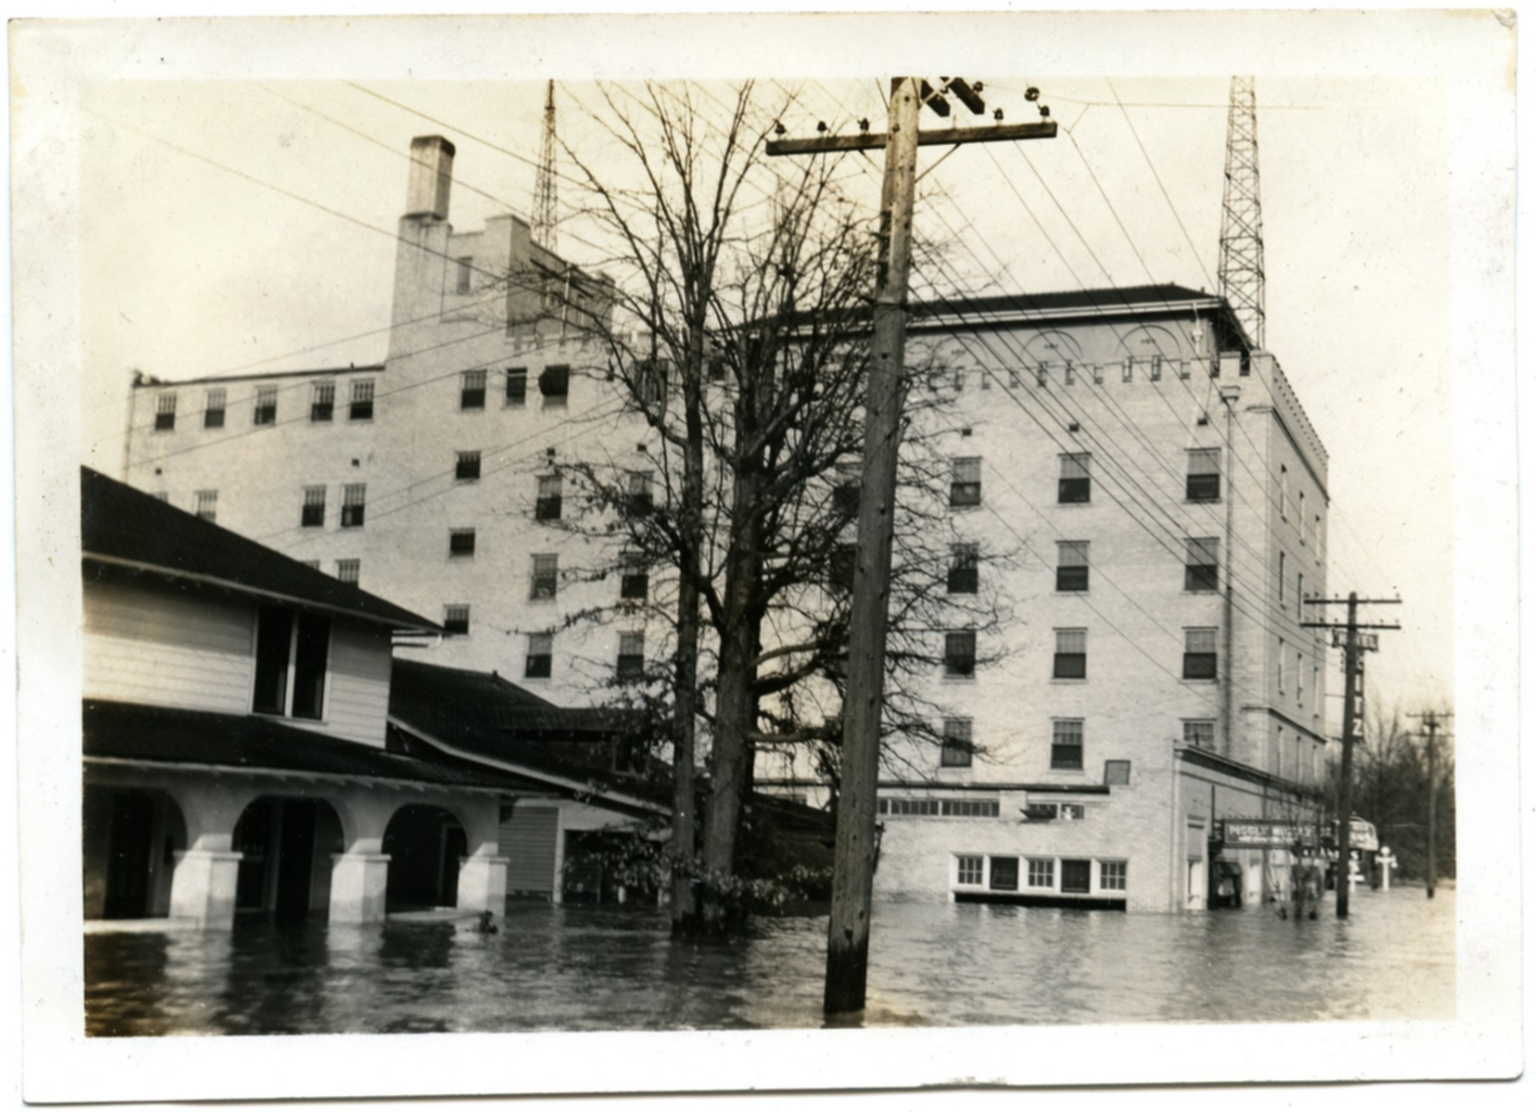 Ritz Hotel in Midtown during '37 flood.